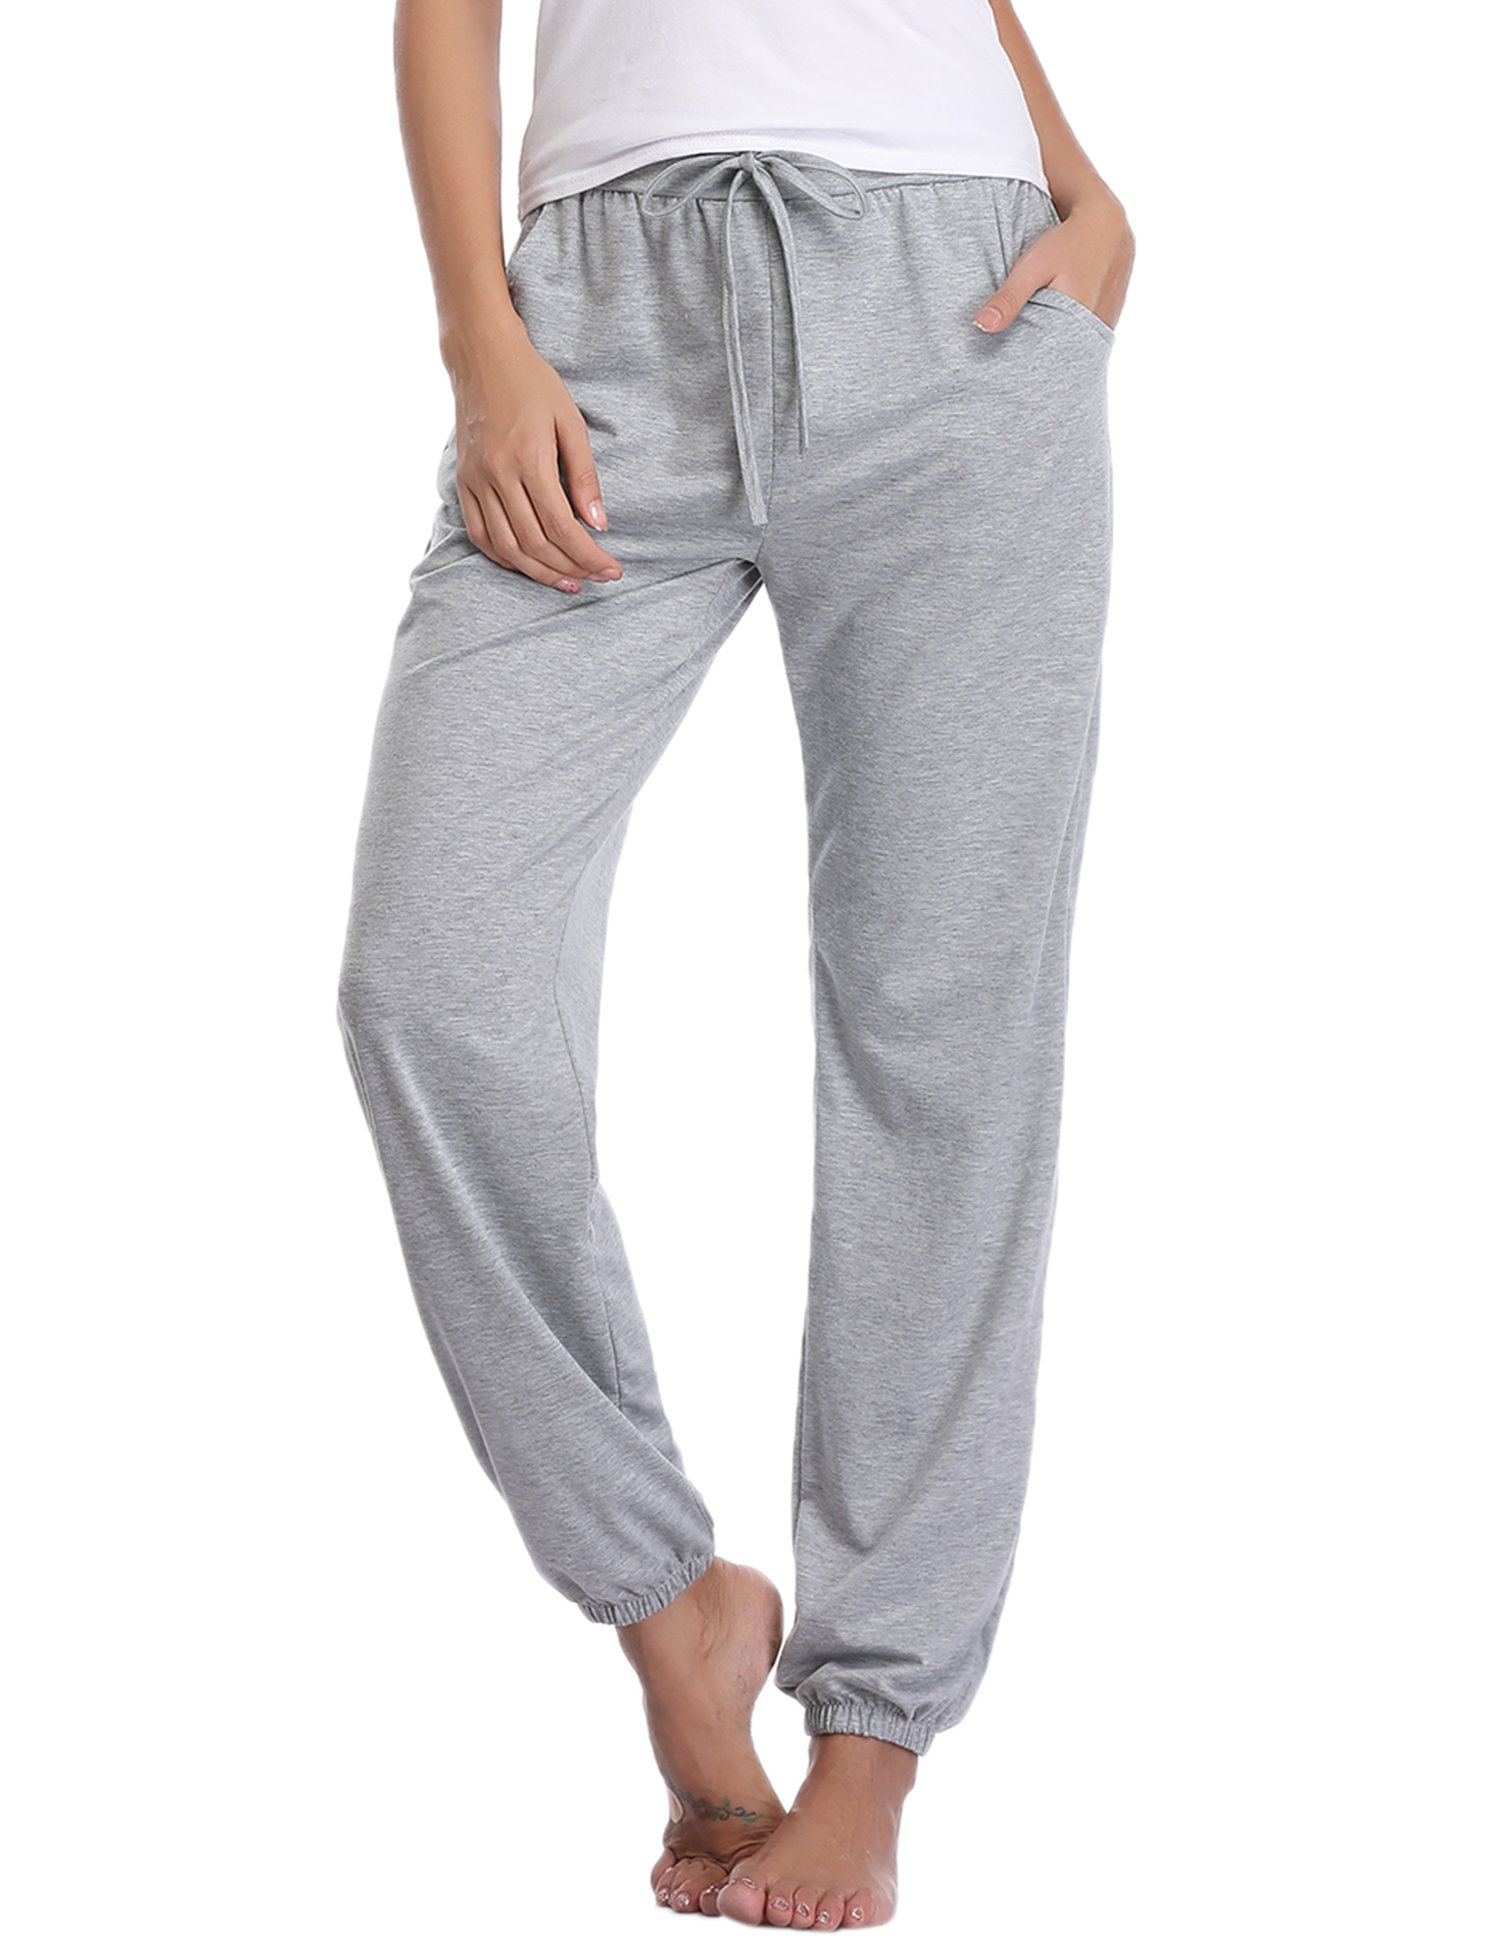 Aibrou Pajama Pants for Womens Cotton Stretch Knit Lounge Pants Bottoms